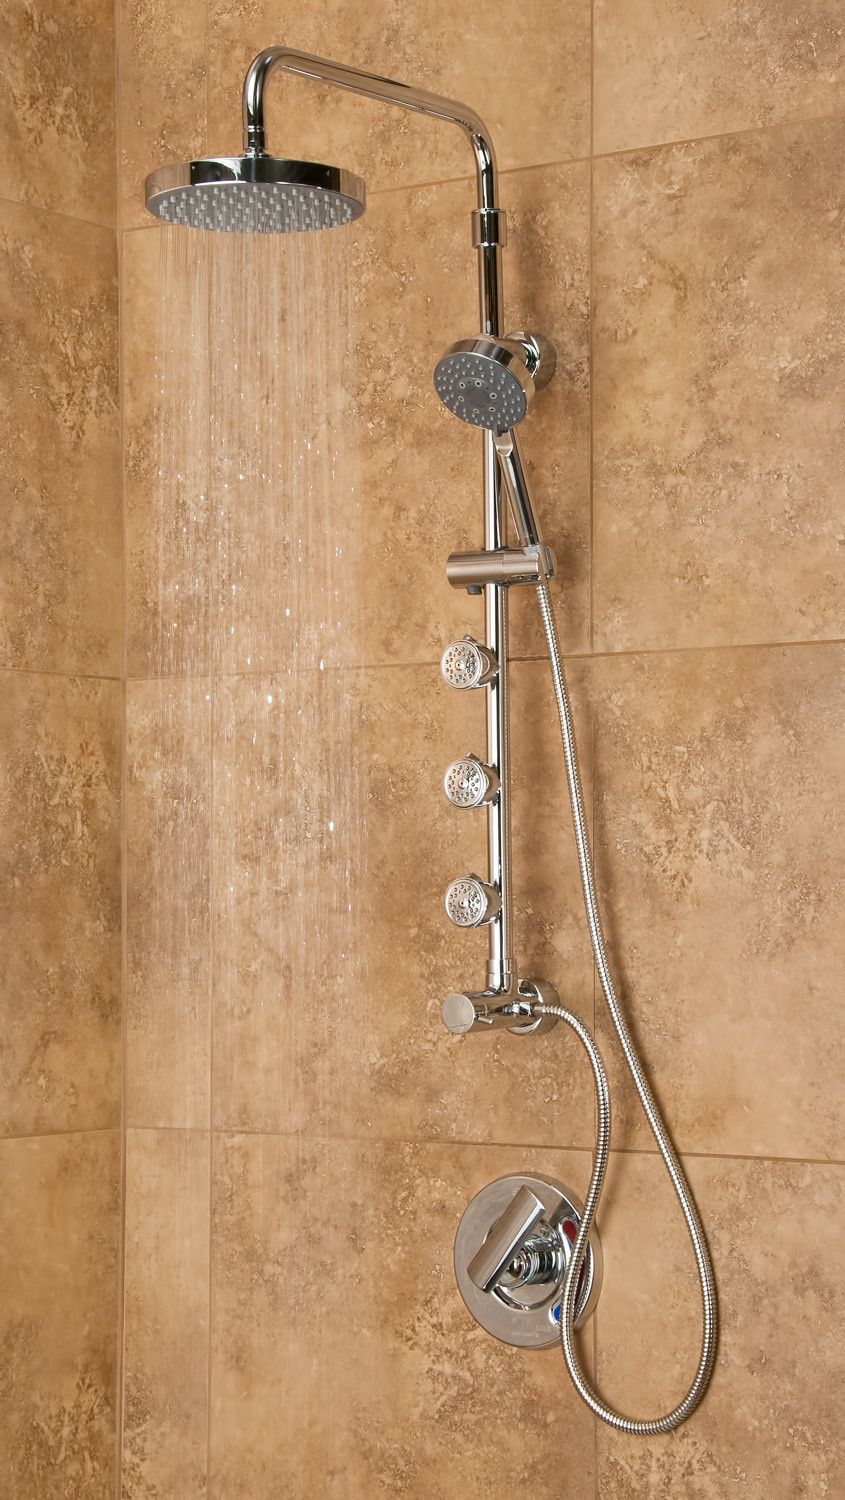 Lanikai Shower Spa System | Shower arm, Shower systems and Rain